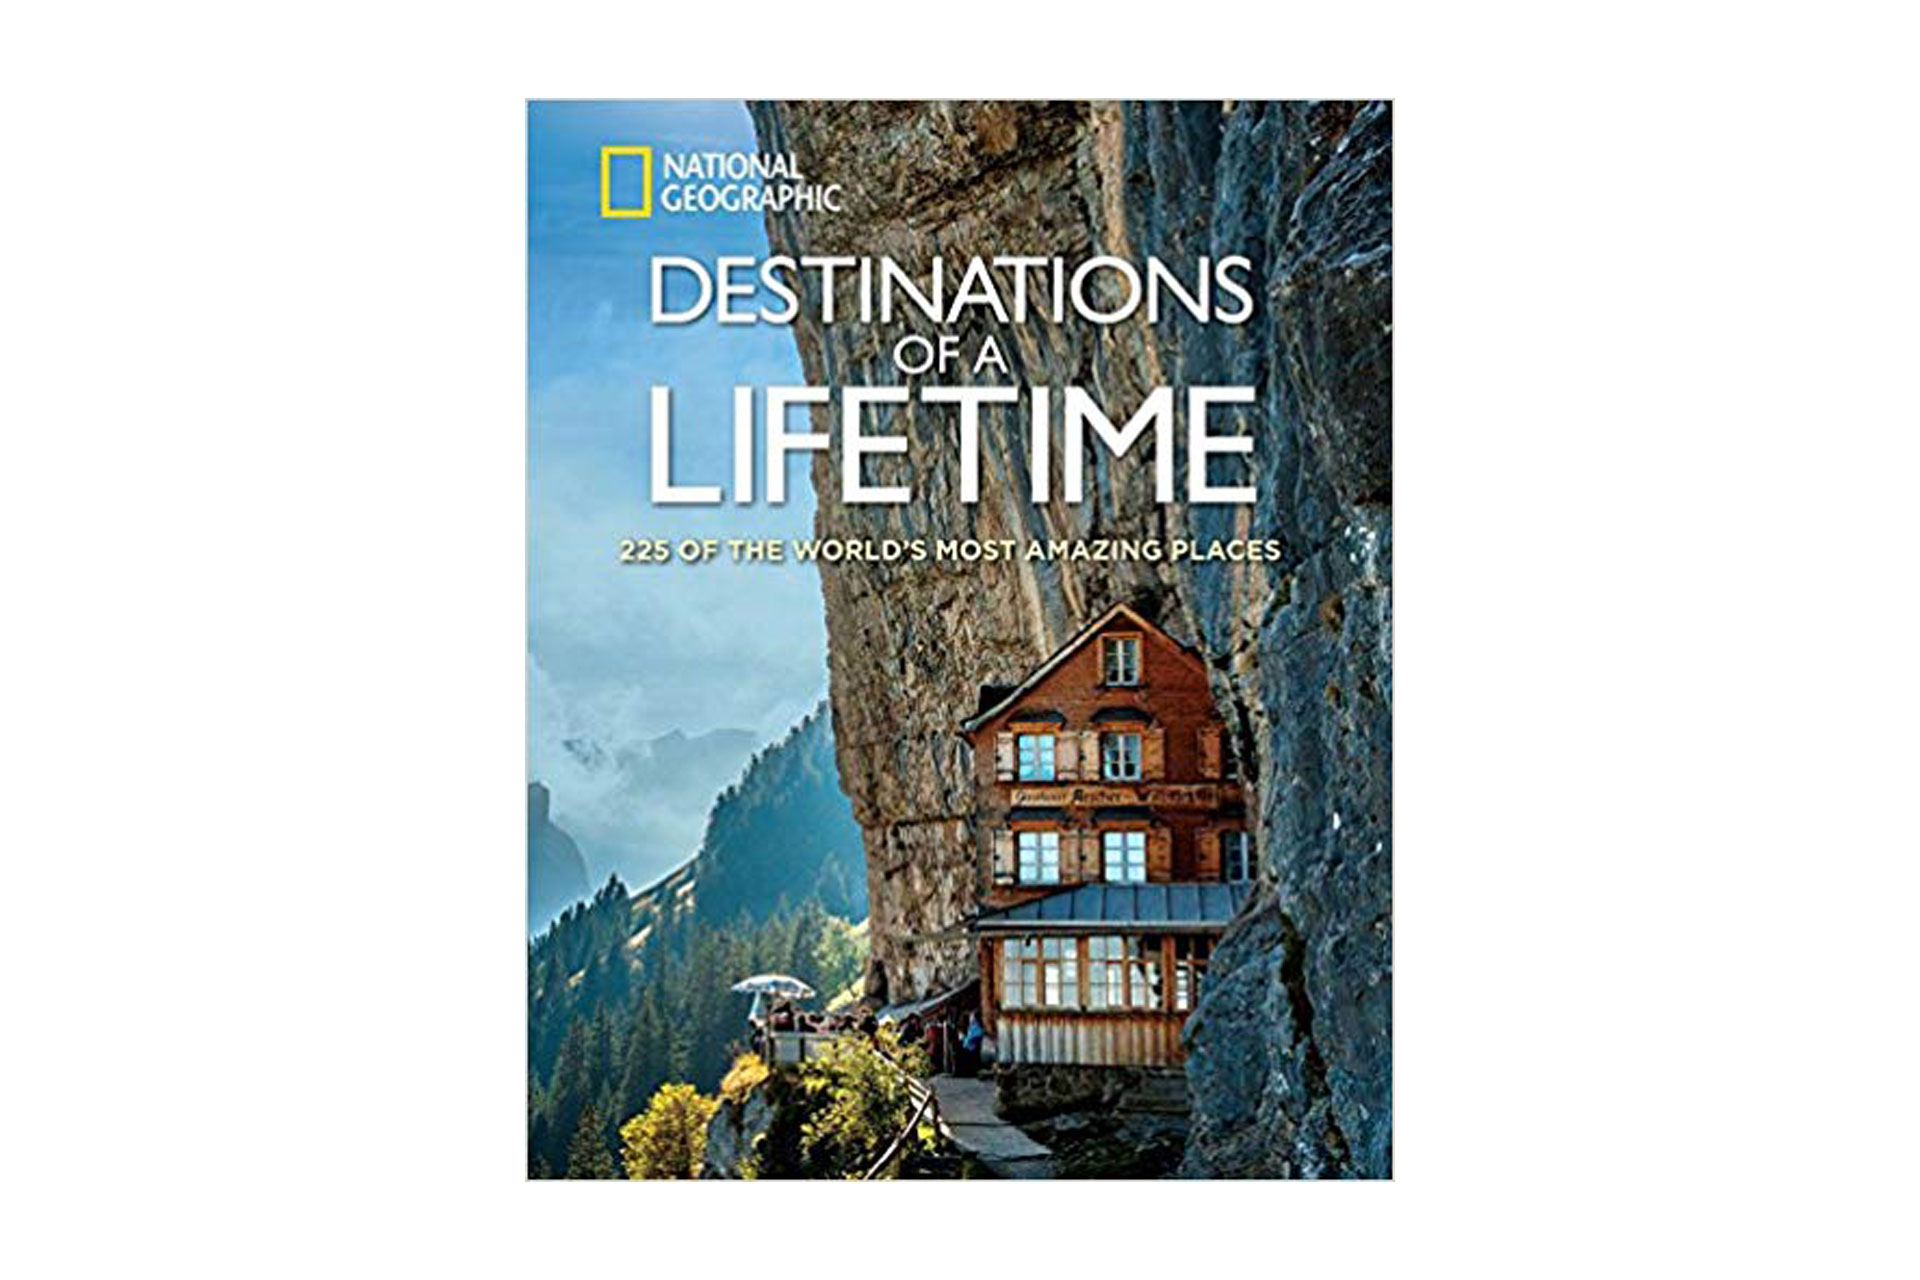 National Geographic Book; Courtesy of Amazon